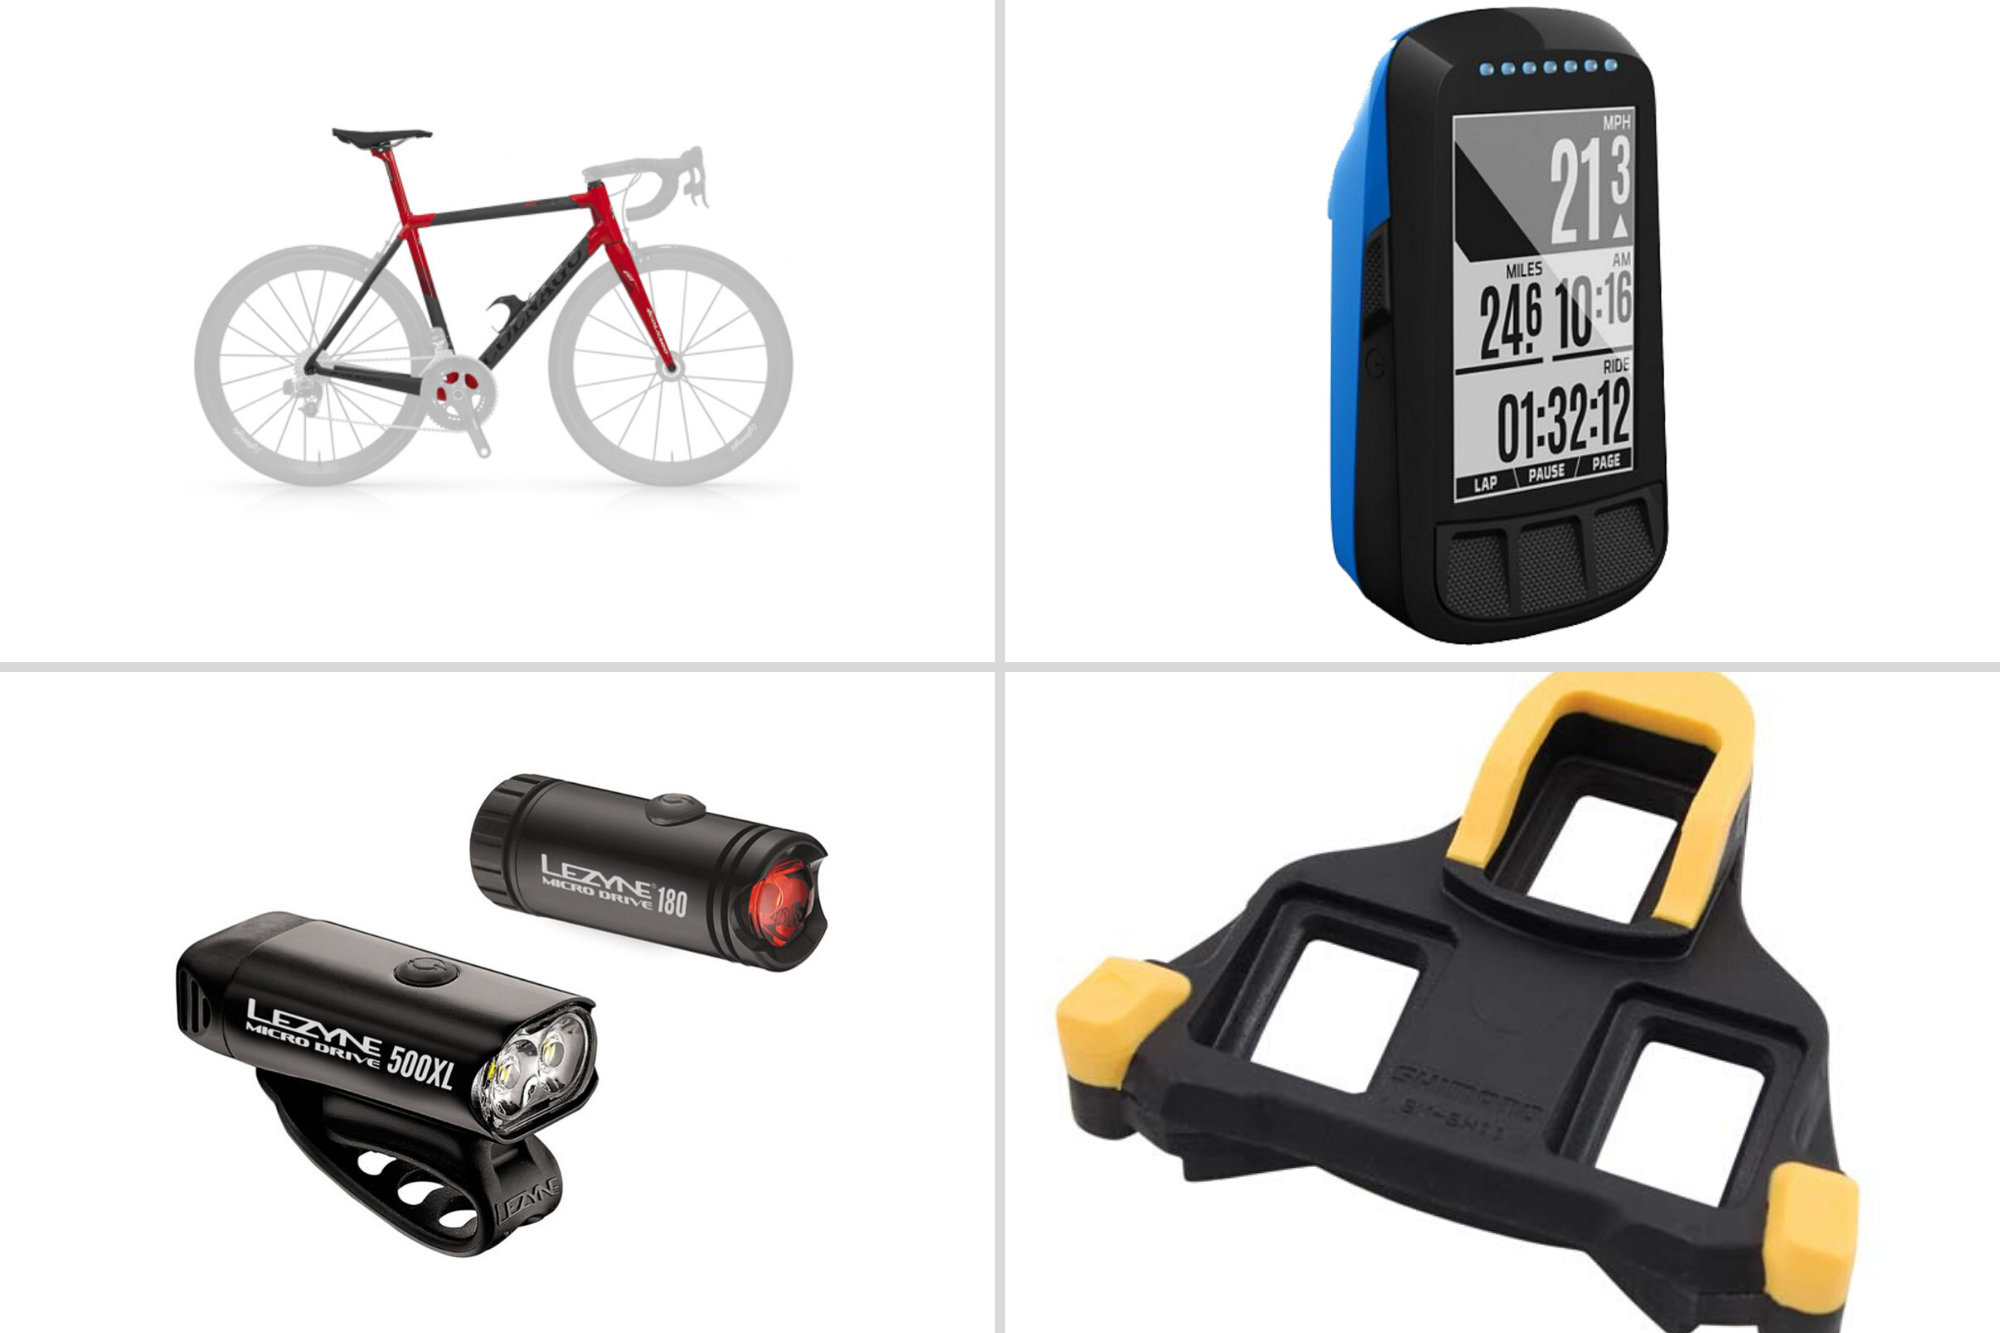 Sunday trading: Save up to 47% on Colnago framesets plus much more